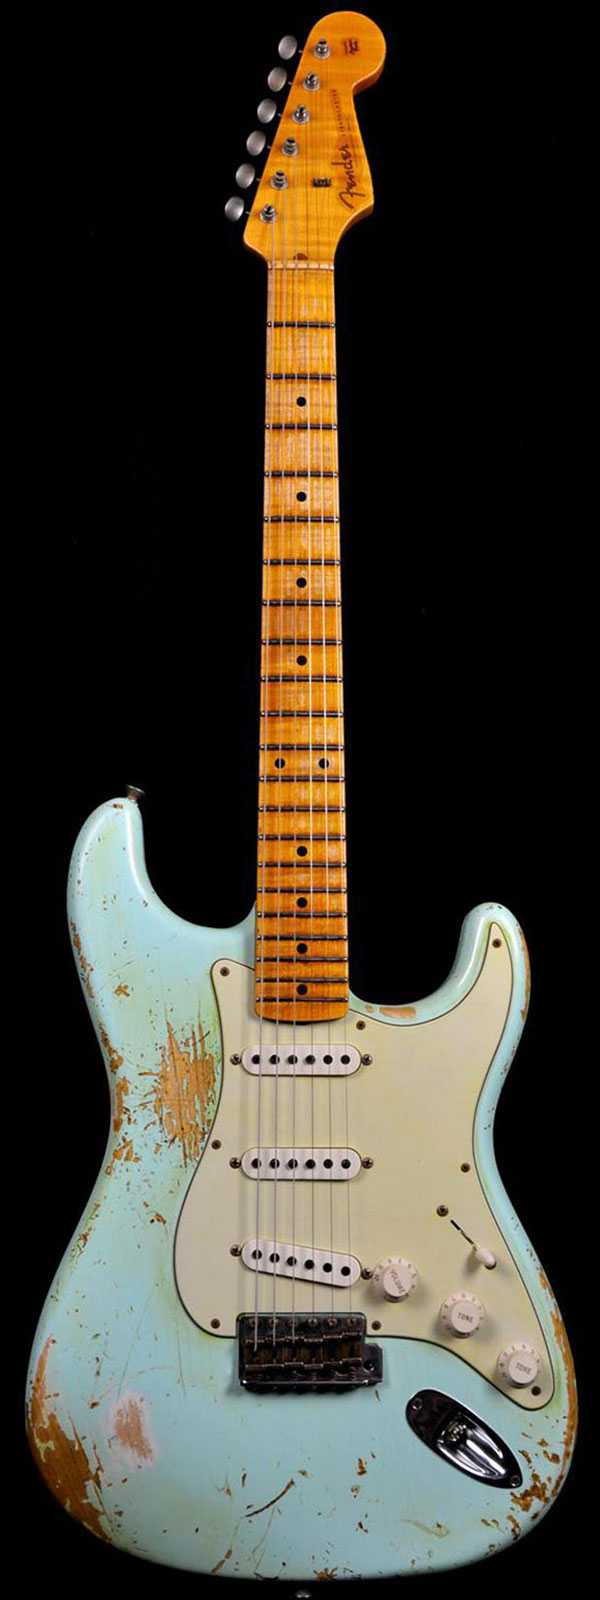 Fender 1956 Stratocaster Heavy Relic AA Flame Maple Neck Faded Surf Green